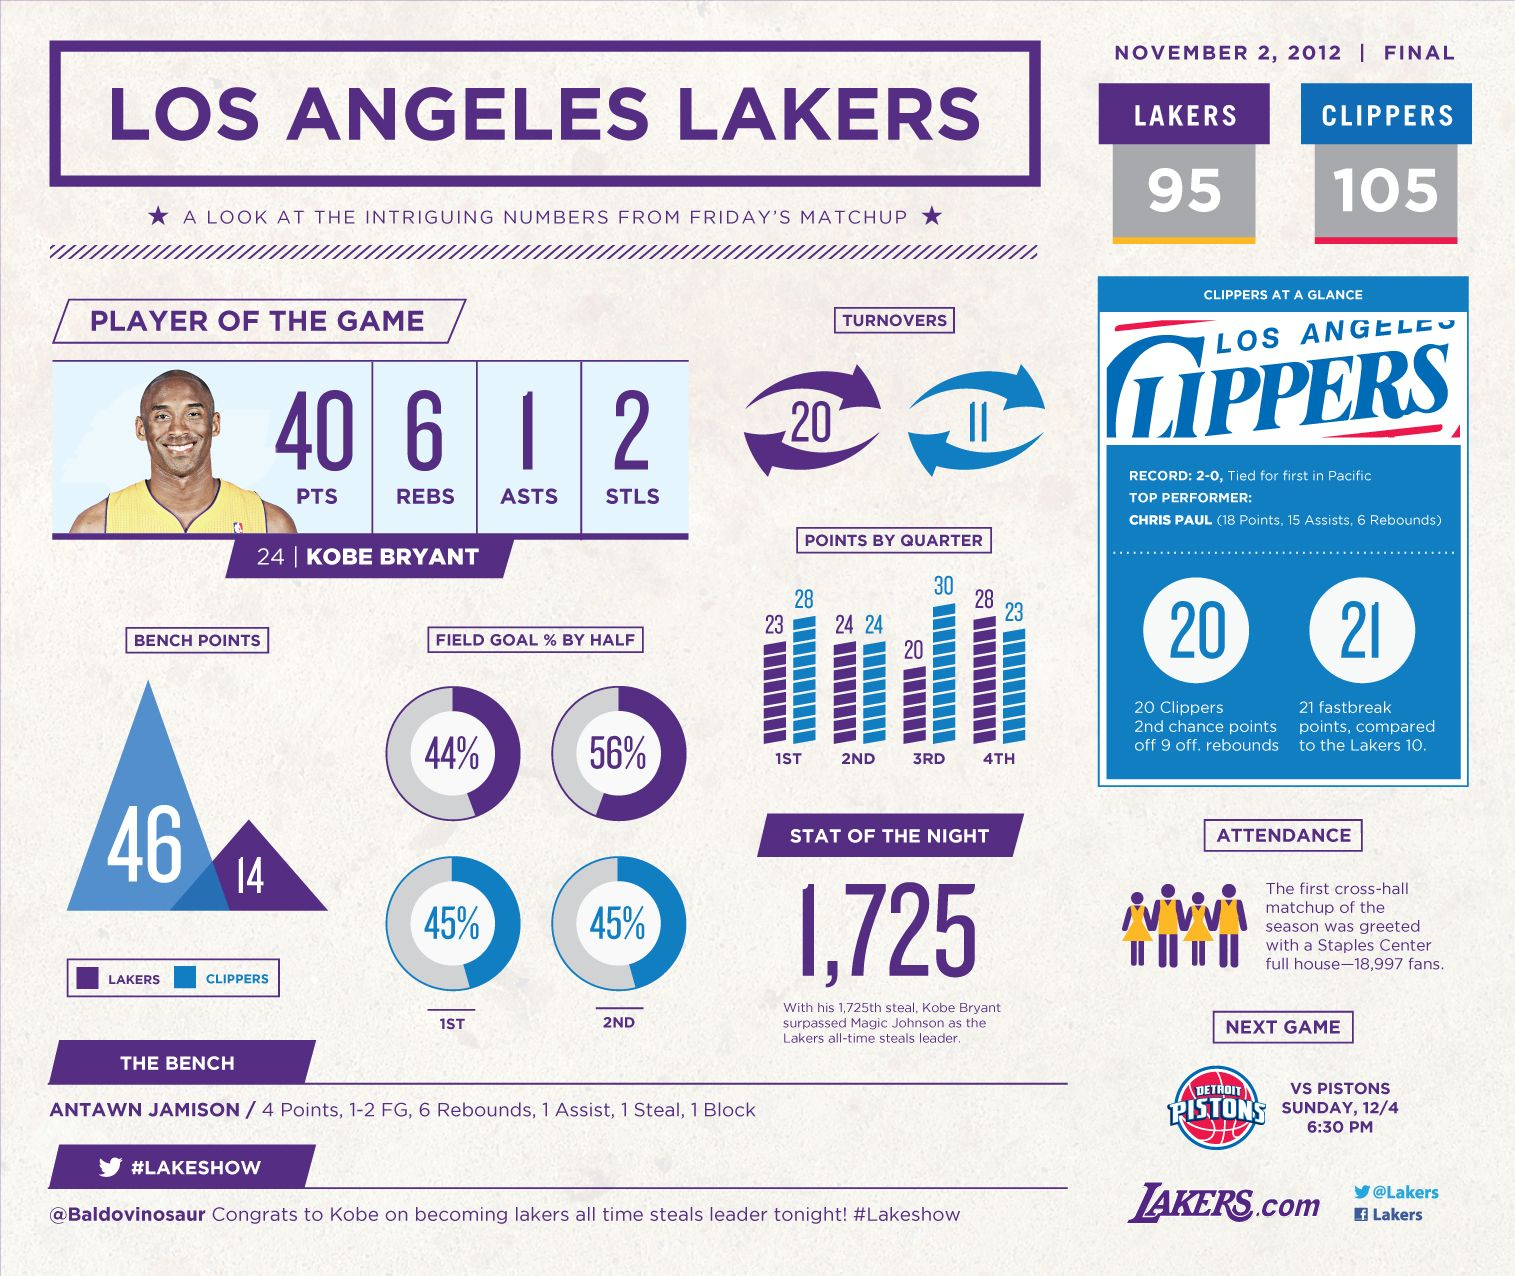 Lakers Vs Clippers Infographic Los Angeles Lakers Infographic Lakers Lakers Vs